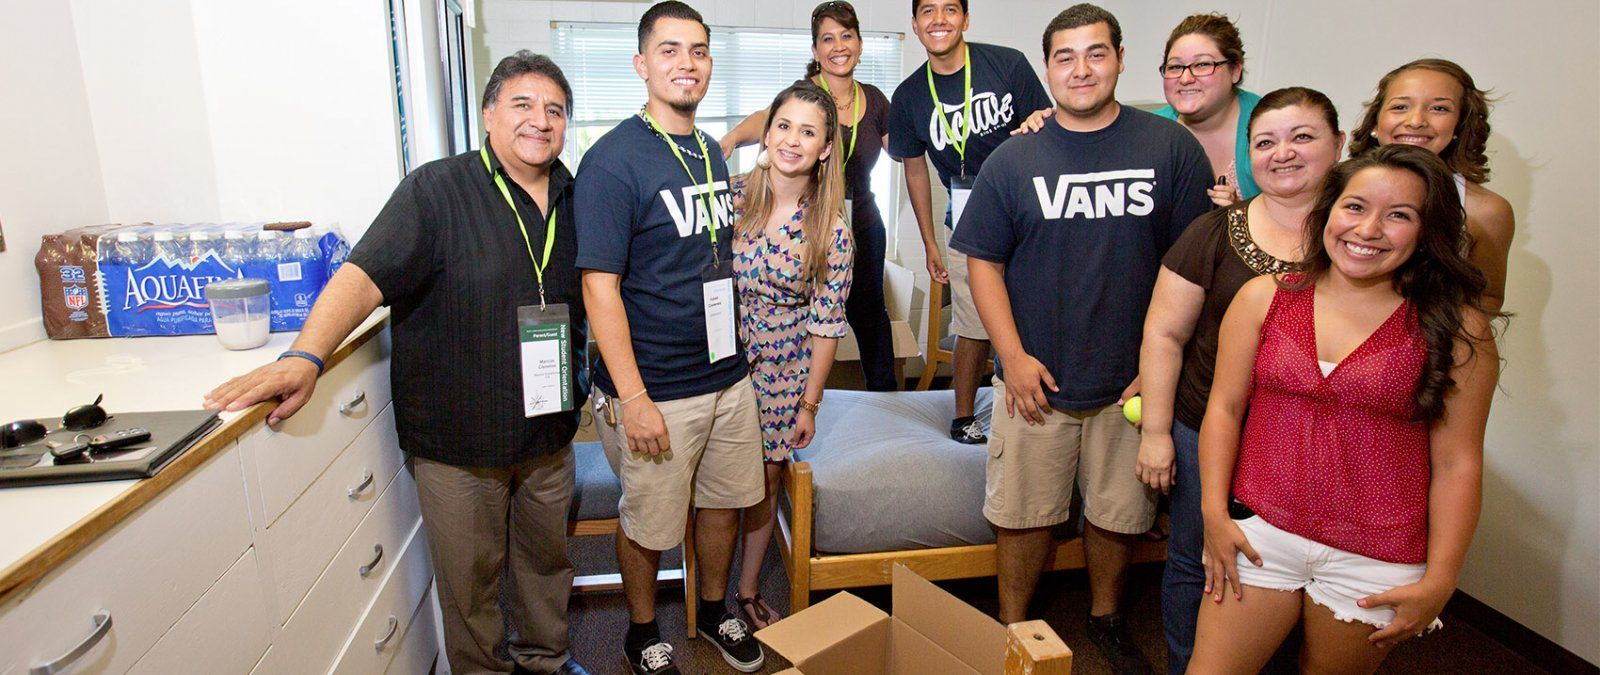 A group of new students and their parents pose for a photo in a residence hall.